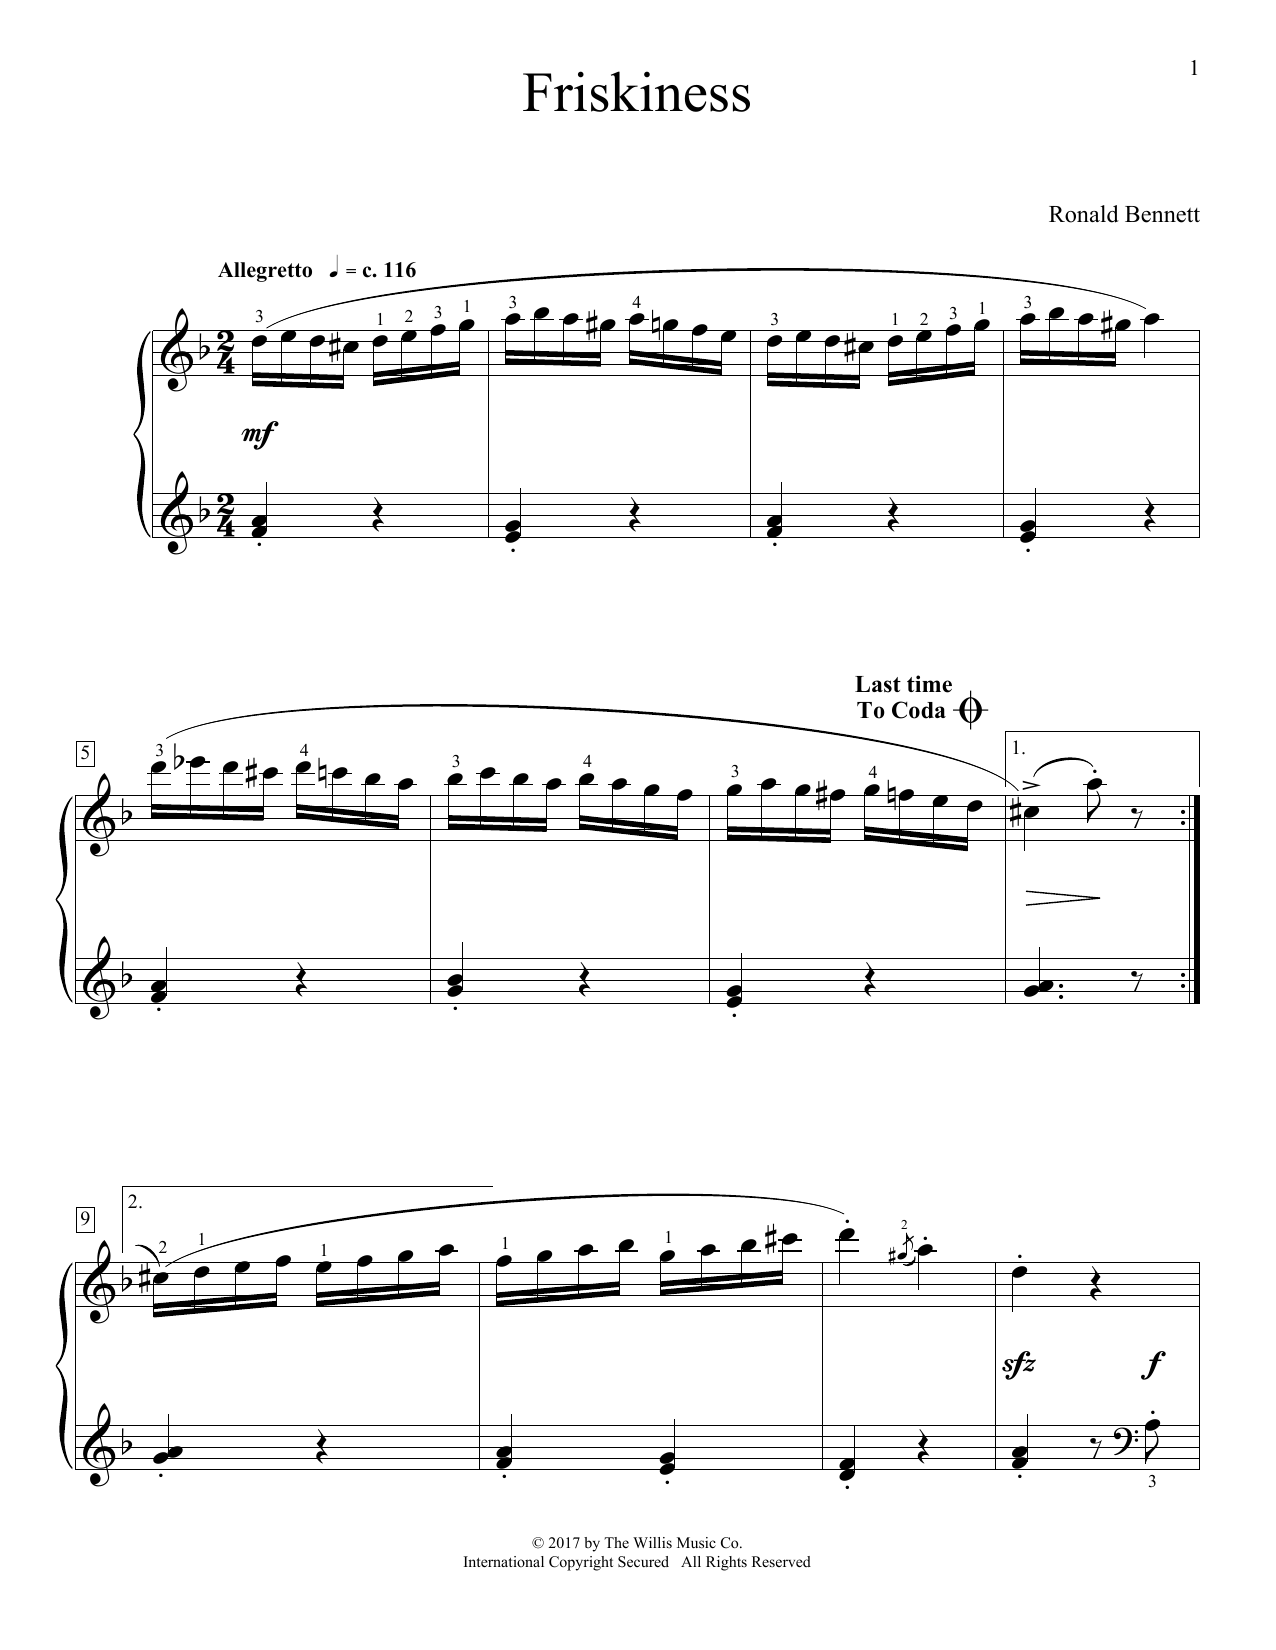 Ronald Bennett Friskiness sheet music notes and chords. Download Printable PDF.